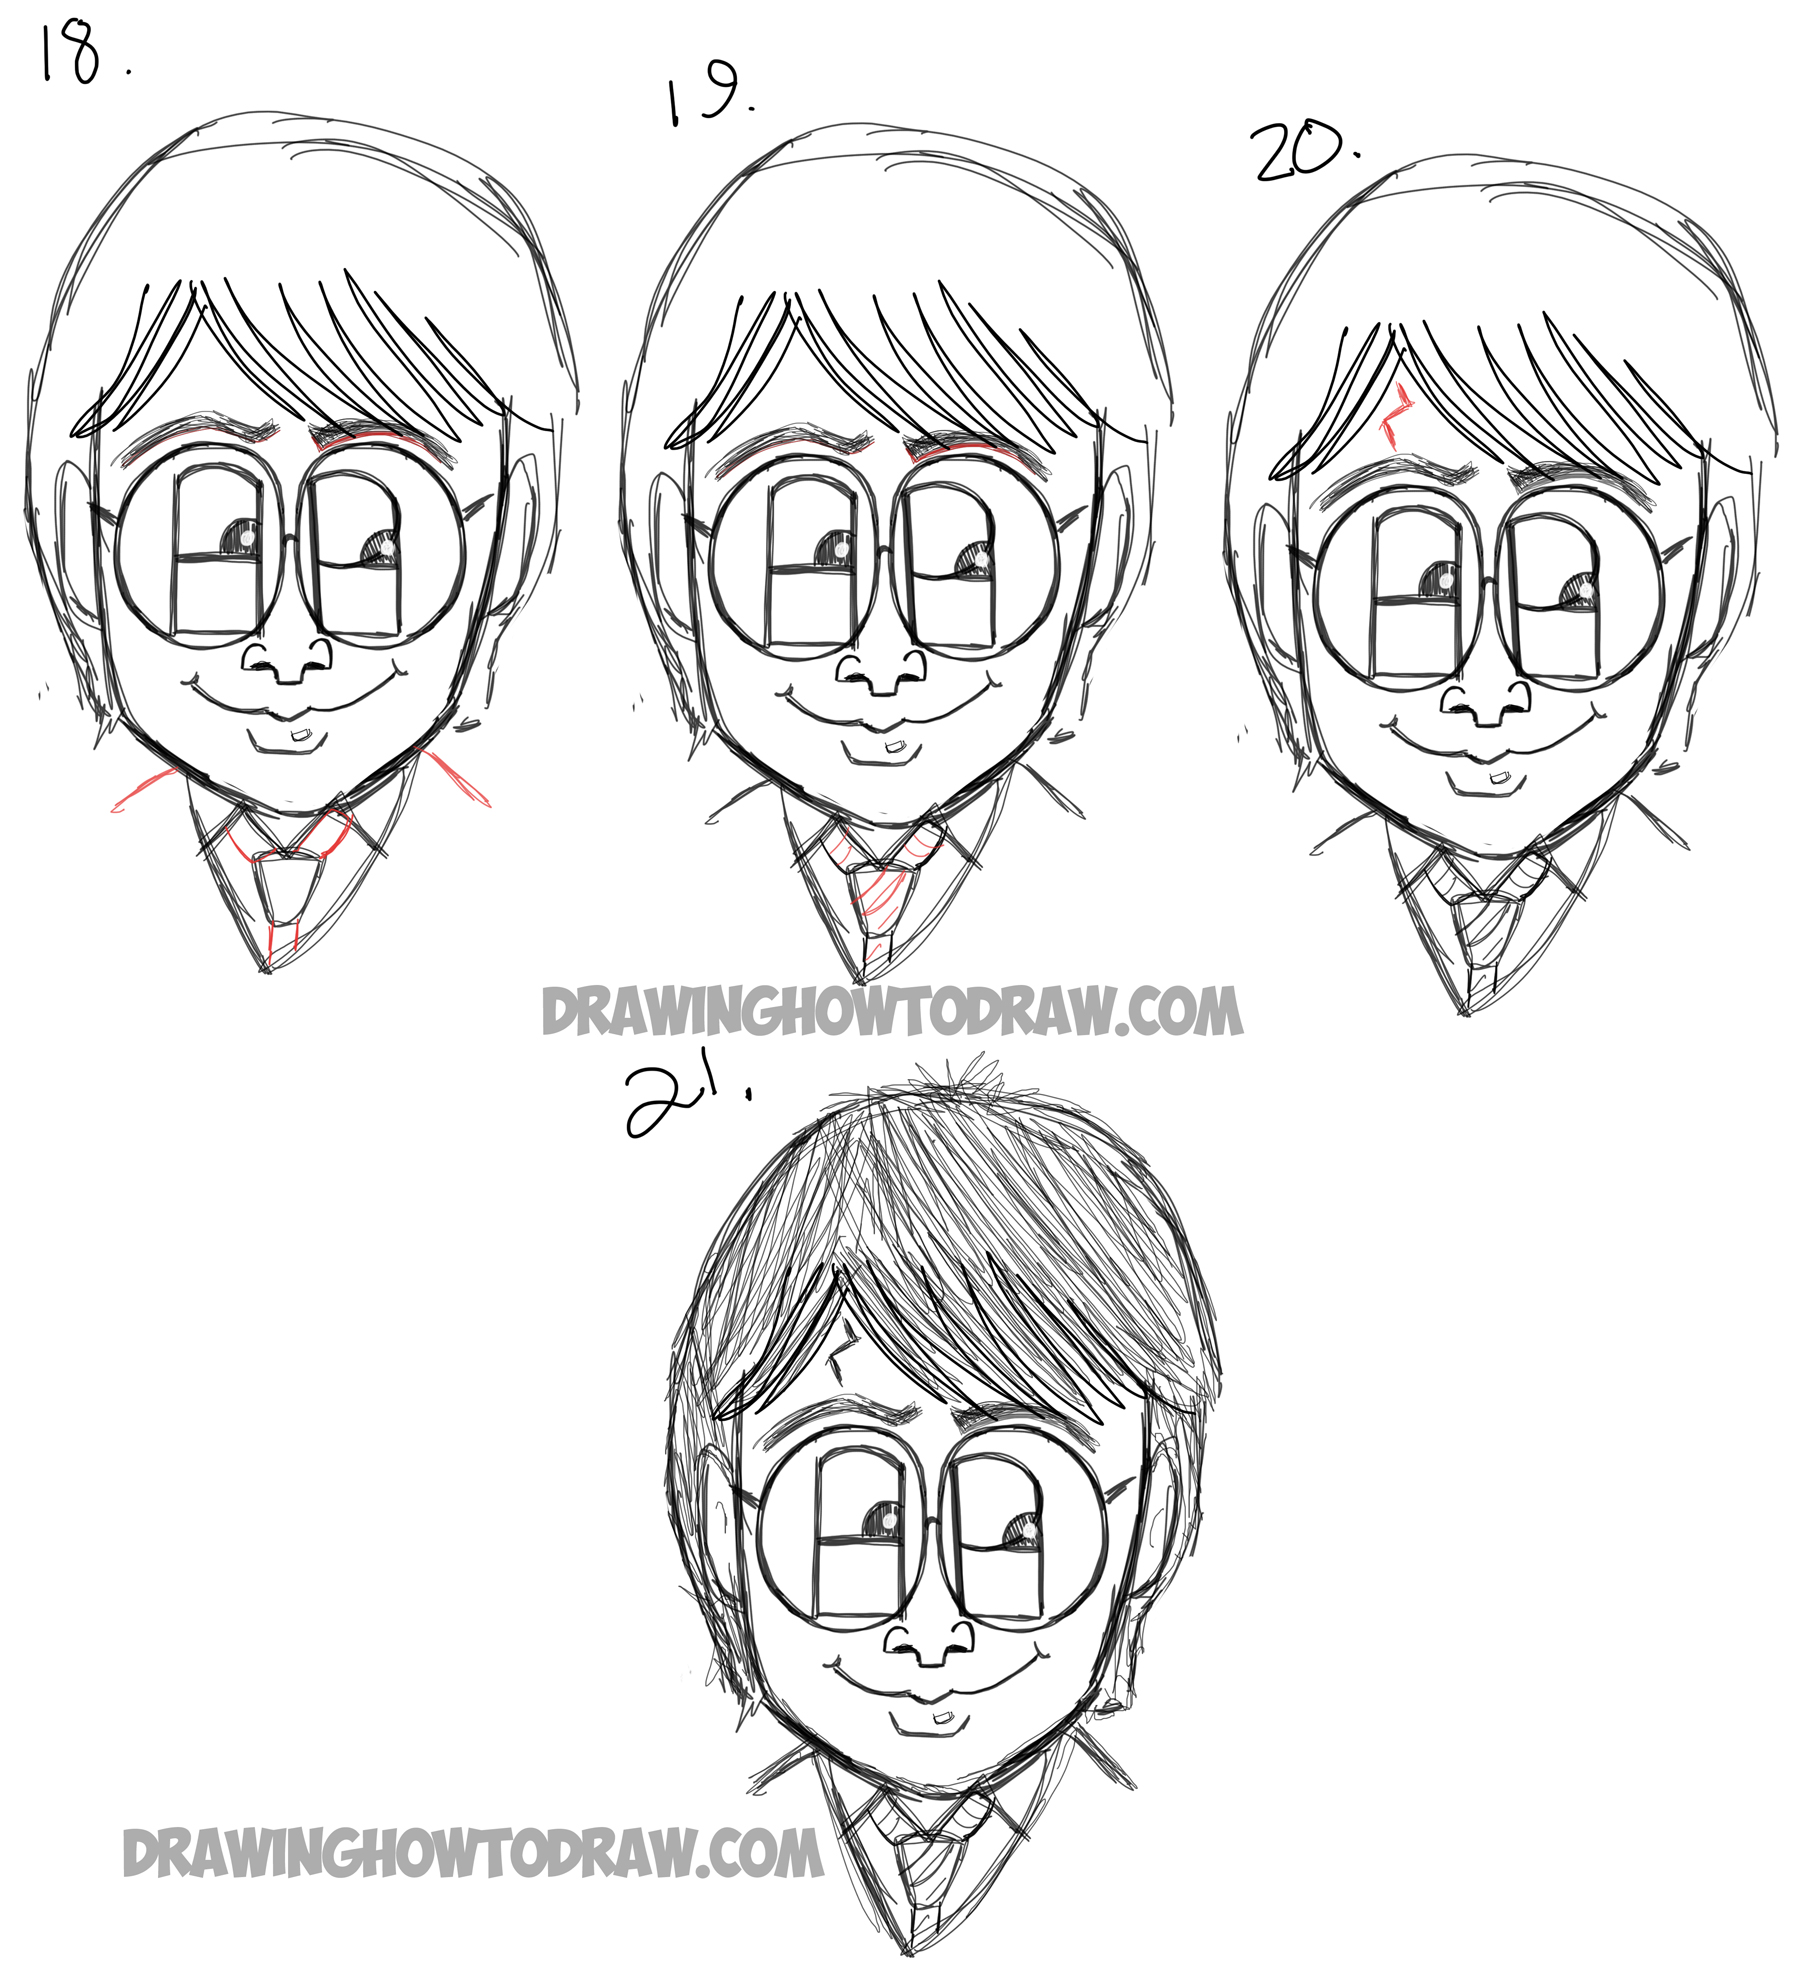 How to Draw Cartoon Harry Potter from the letters 'HP